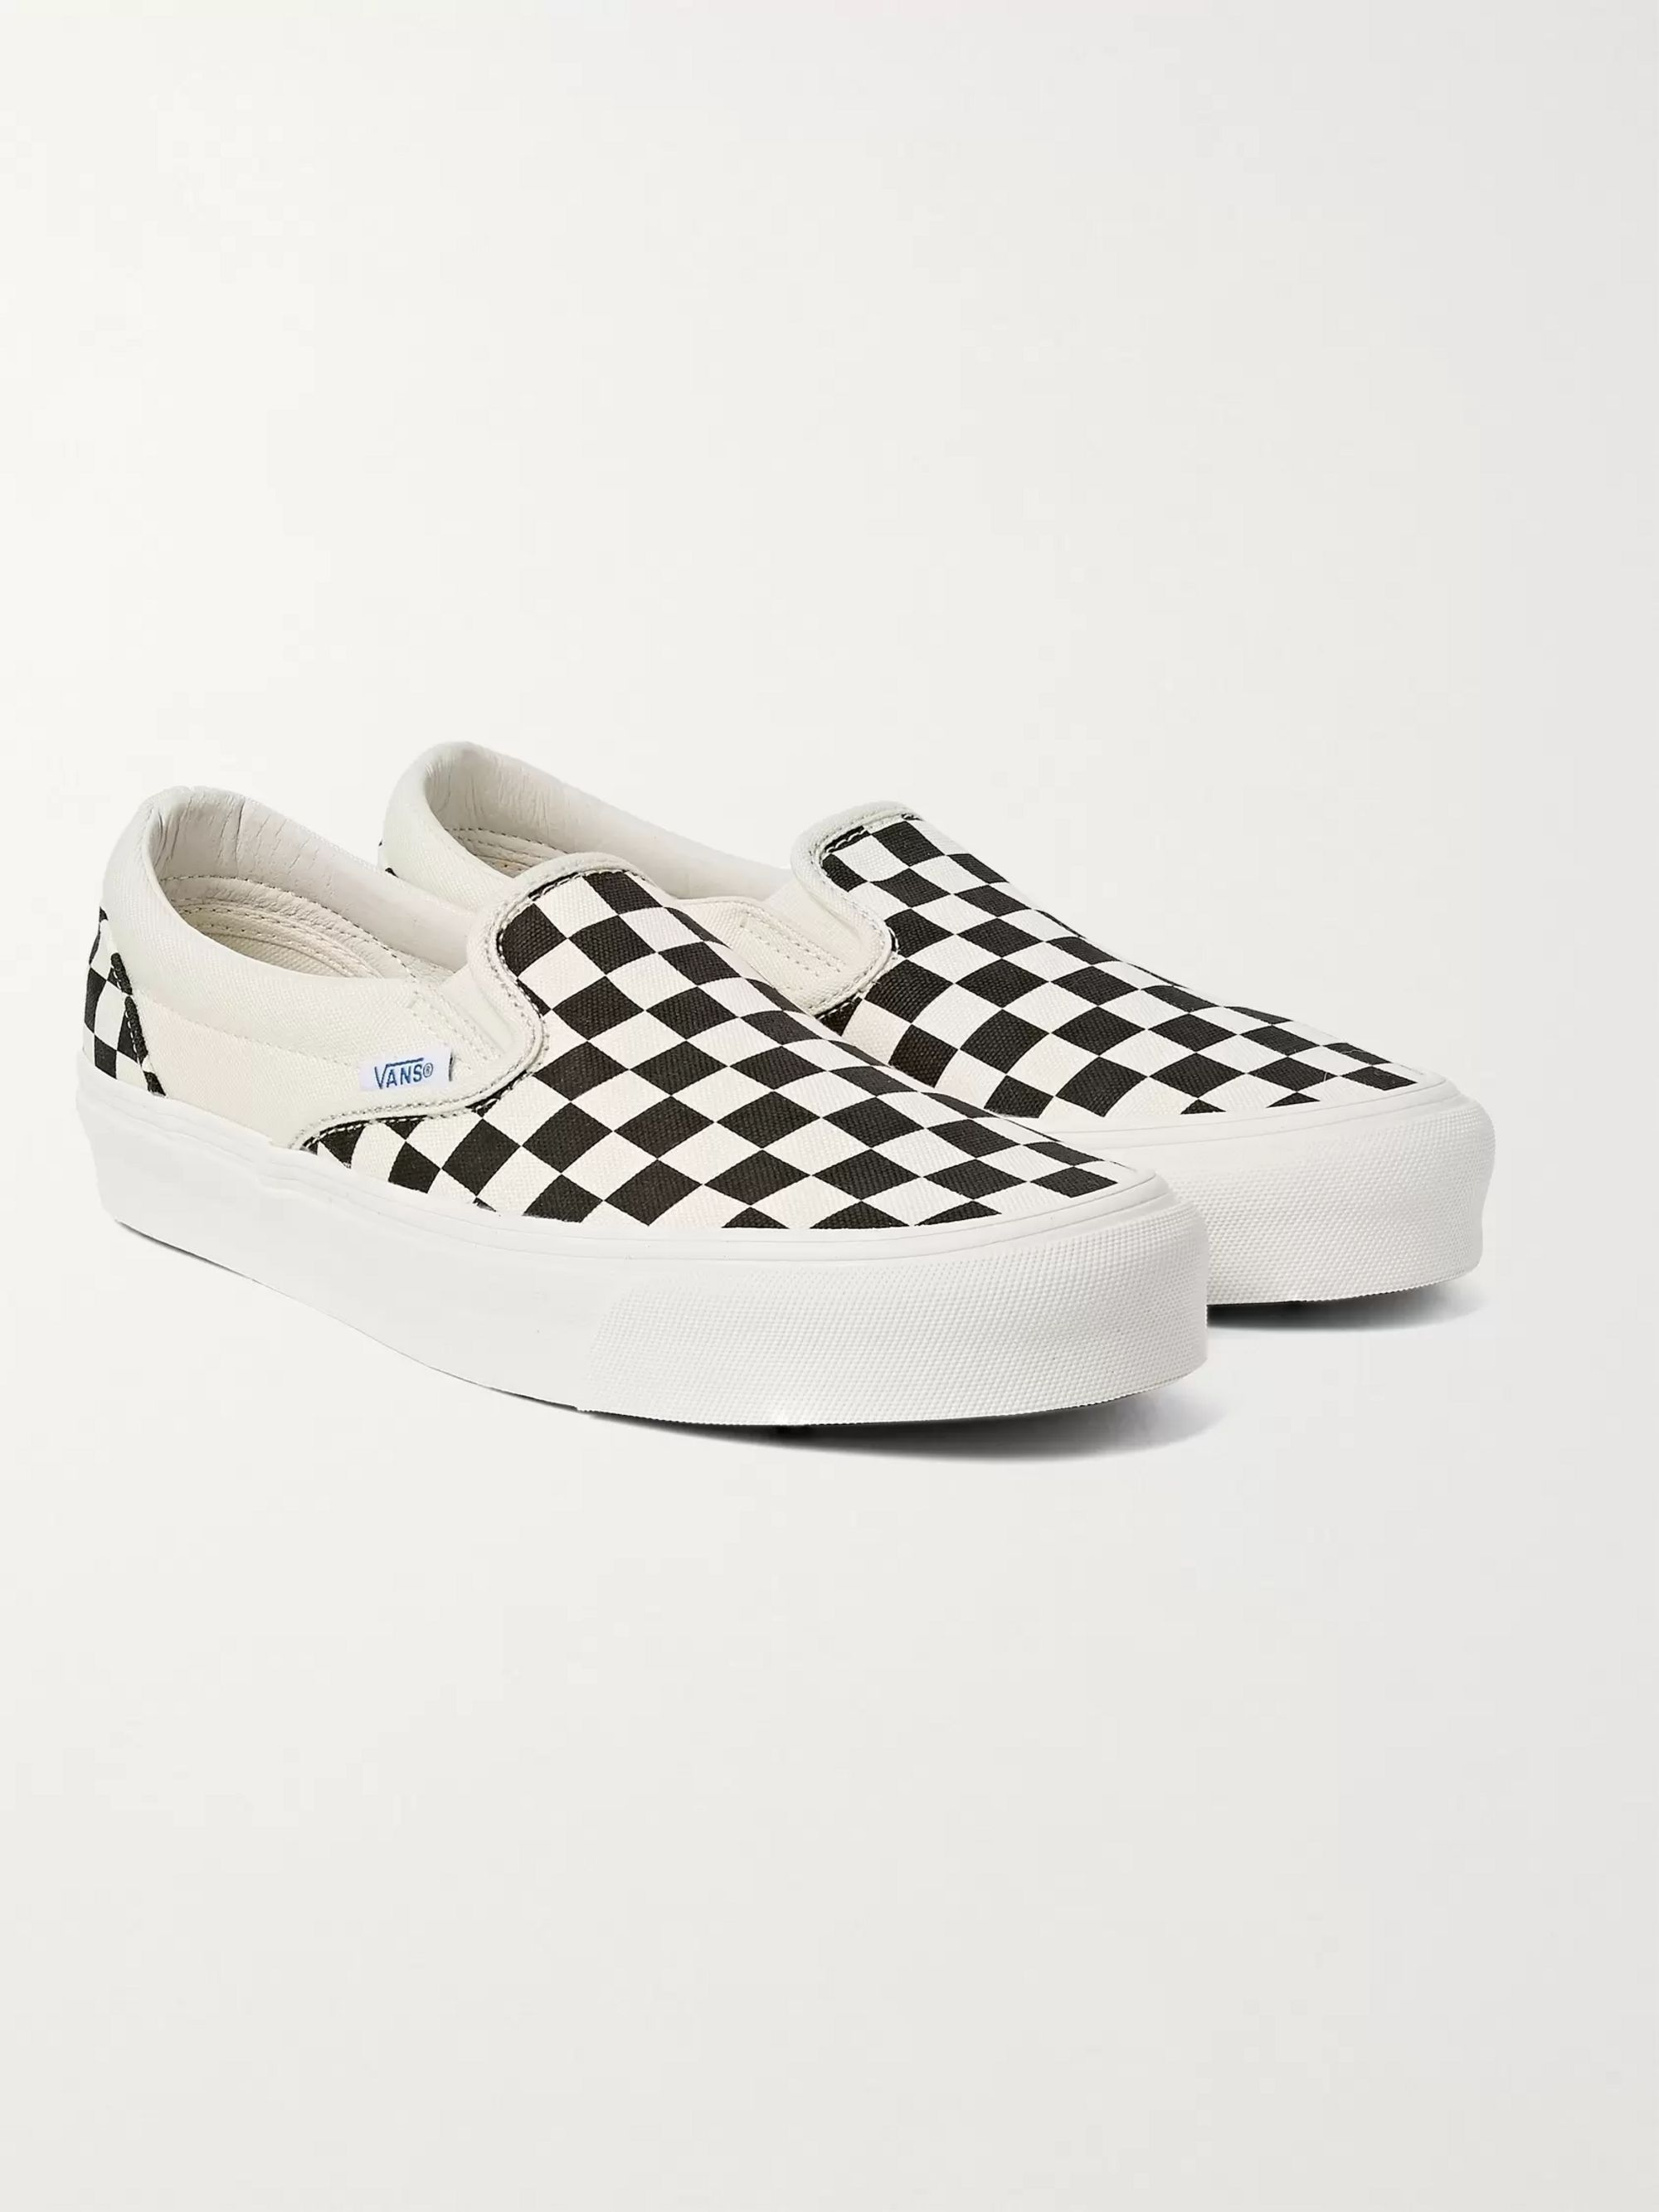 OG Classic LX Checkerboard Canvas Slip On Sneakers